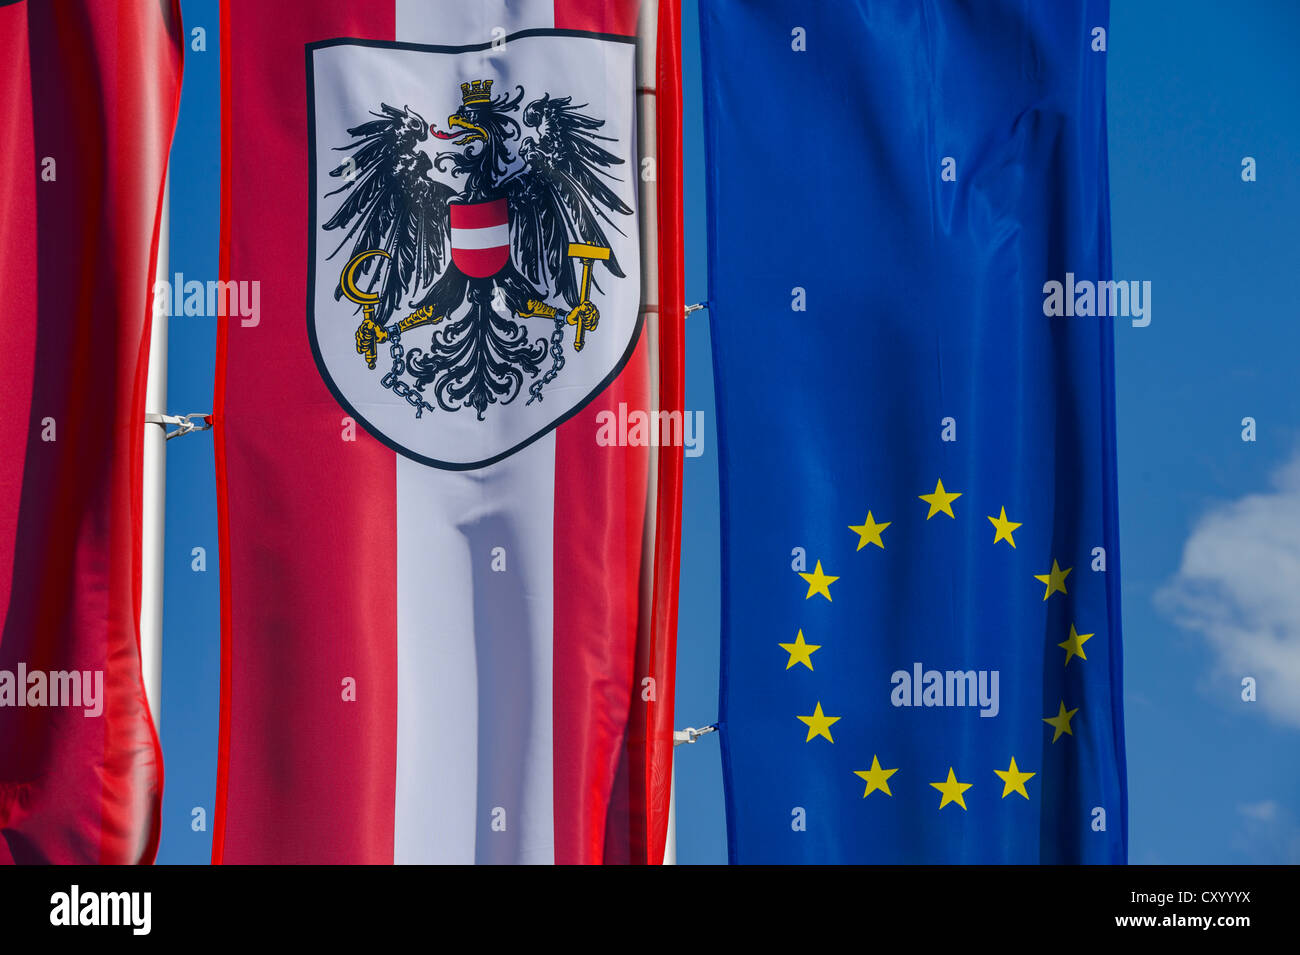 Flags of the Republic of Austria and the EU, forecourt of the 'Tirol Panorama' Museum, at Bergisel, Innsbruck, - Stock Image